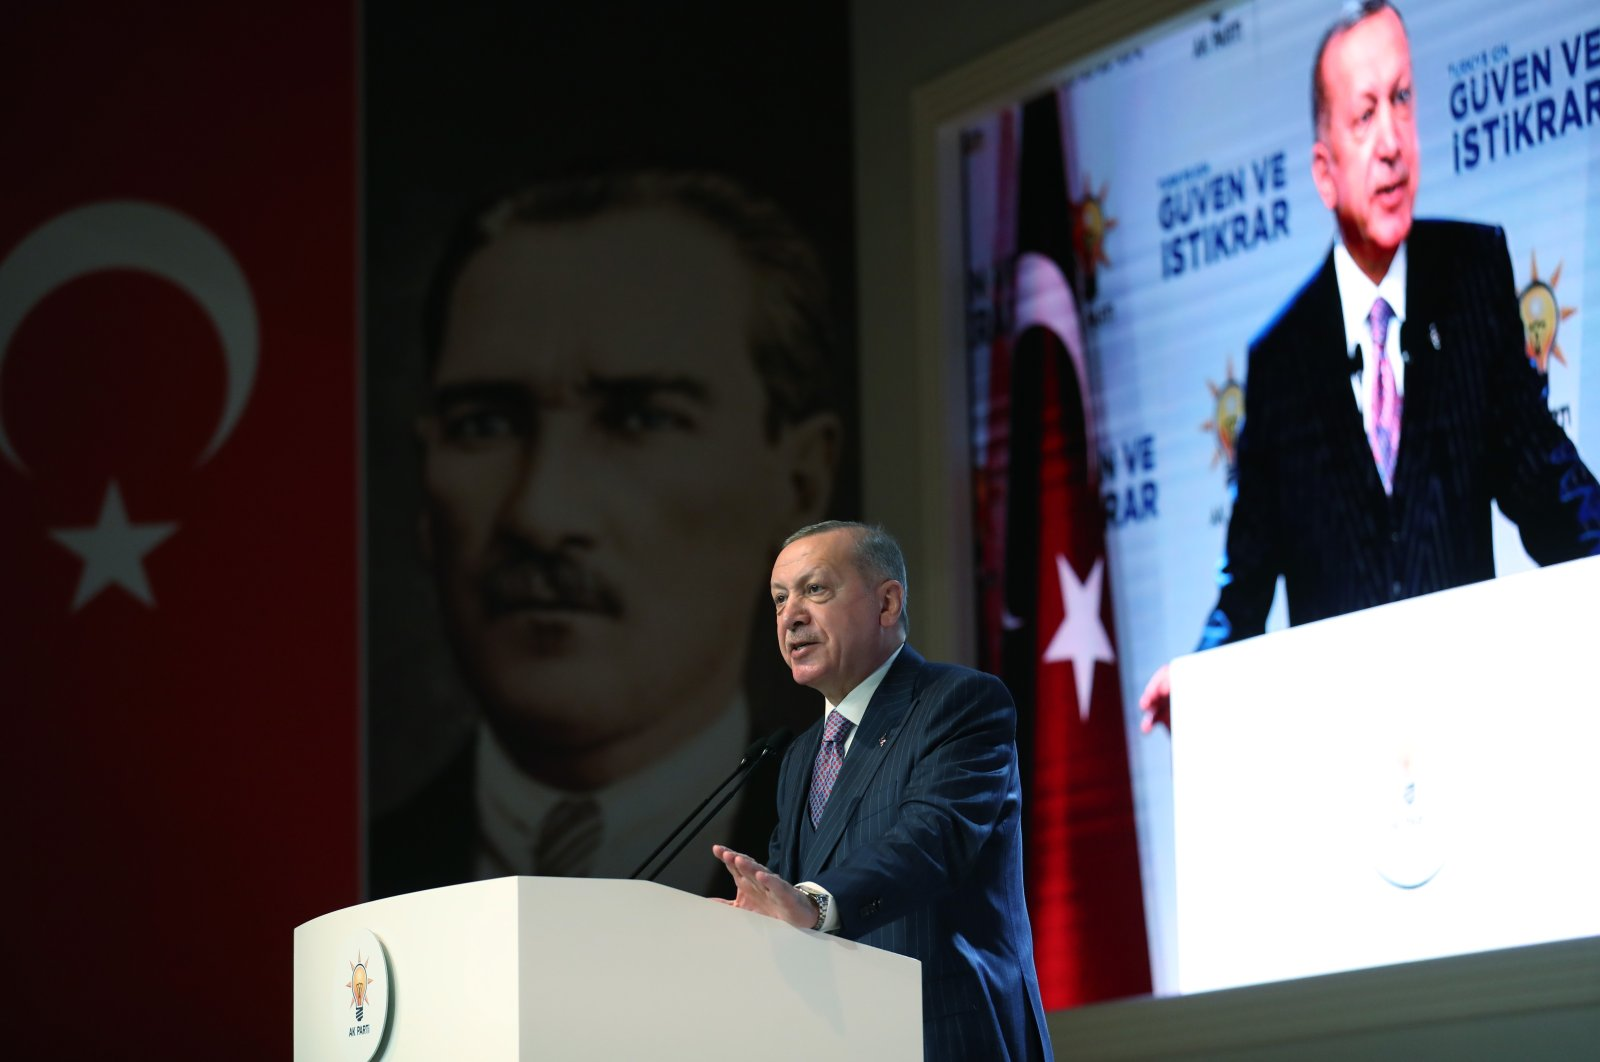 President Recep Tayyip Erdoğan speaks at the Justice and Development Party's (AK Party) extended provincial heads meeting on the Democracy and Freedom Island, Istanbul, May 27, 2021. (AA Photo)